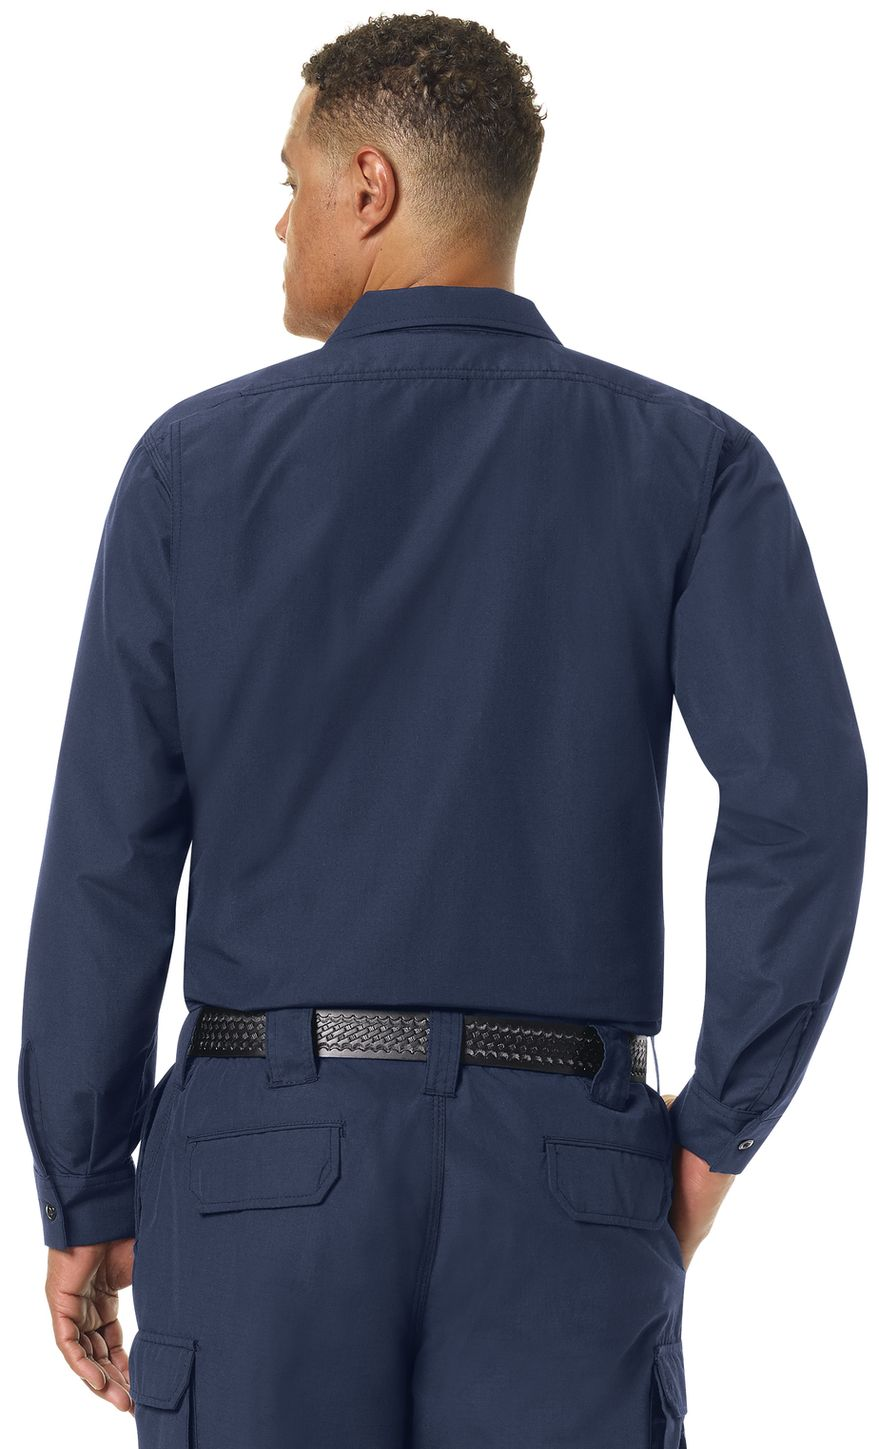 Workrite FR Shirt Jacket FST2, Ripstop, Tactical Navy Example Back